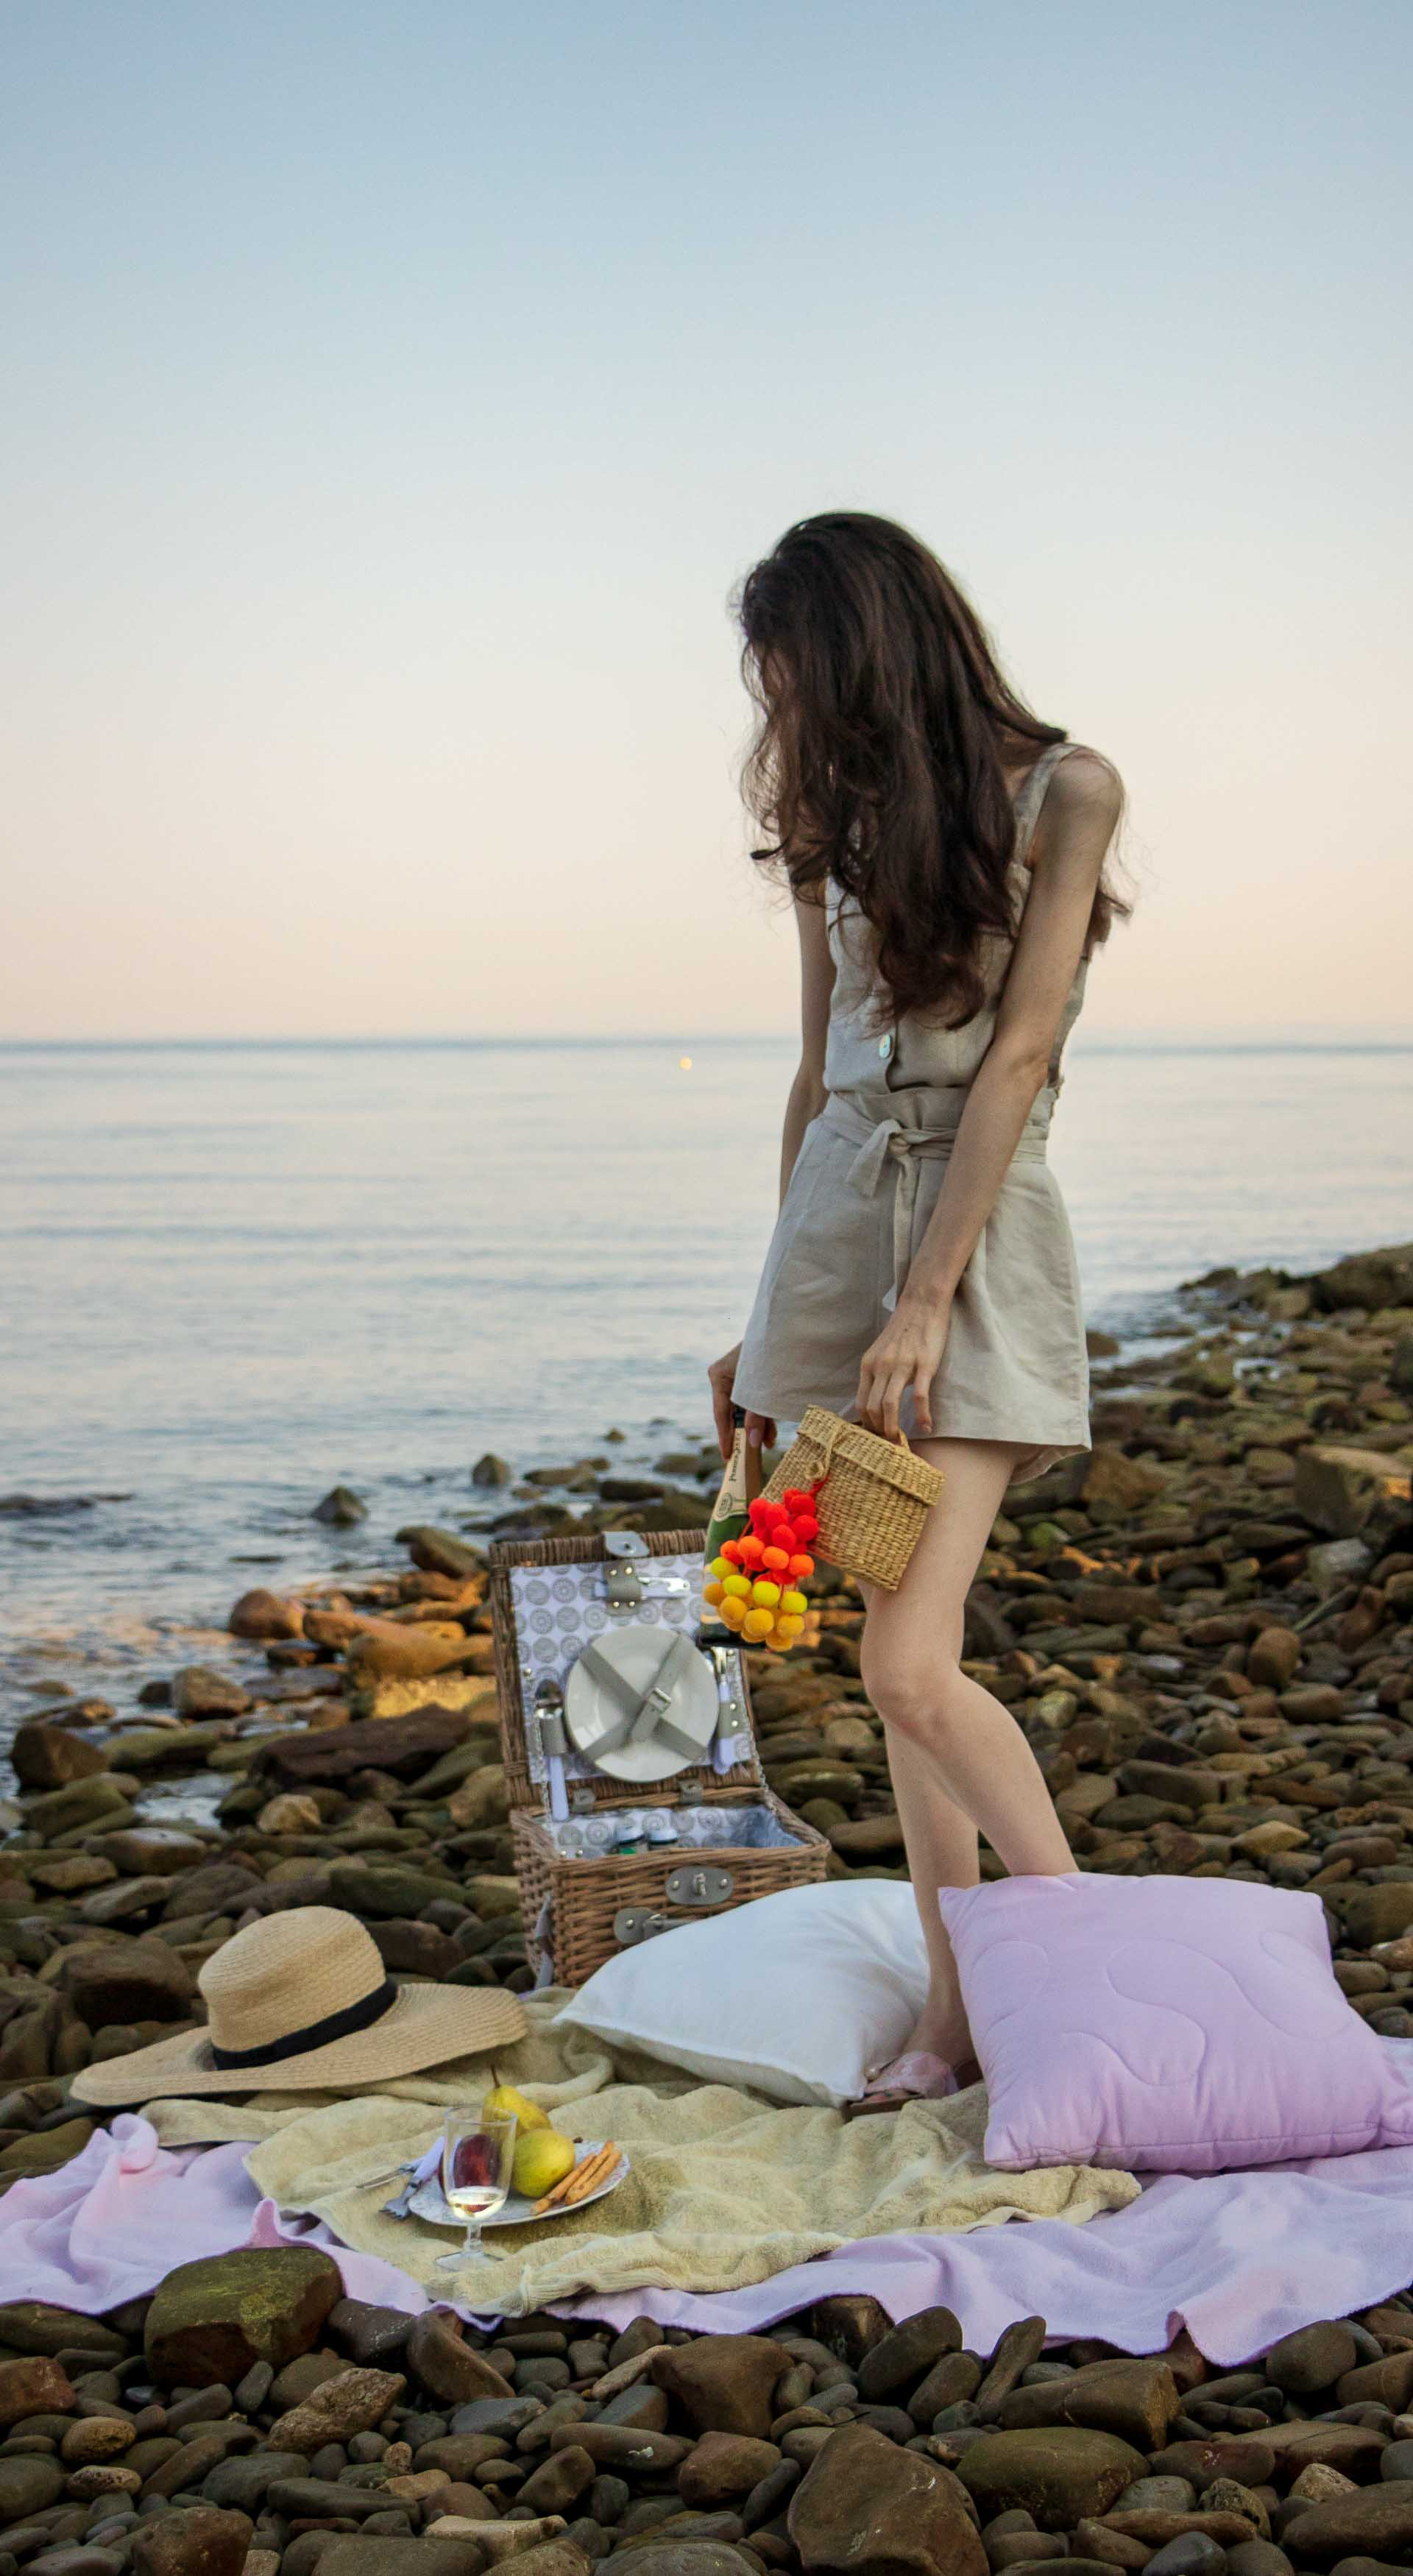 Slovenian Fashion Blogger Veronika Lipar of Brunette from Wall dressed in beige linen crop top, paper bag linen shorts, luxe pool slides, large straw hat, Nannacay basket bag while having picnic on the beach